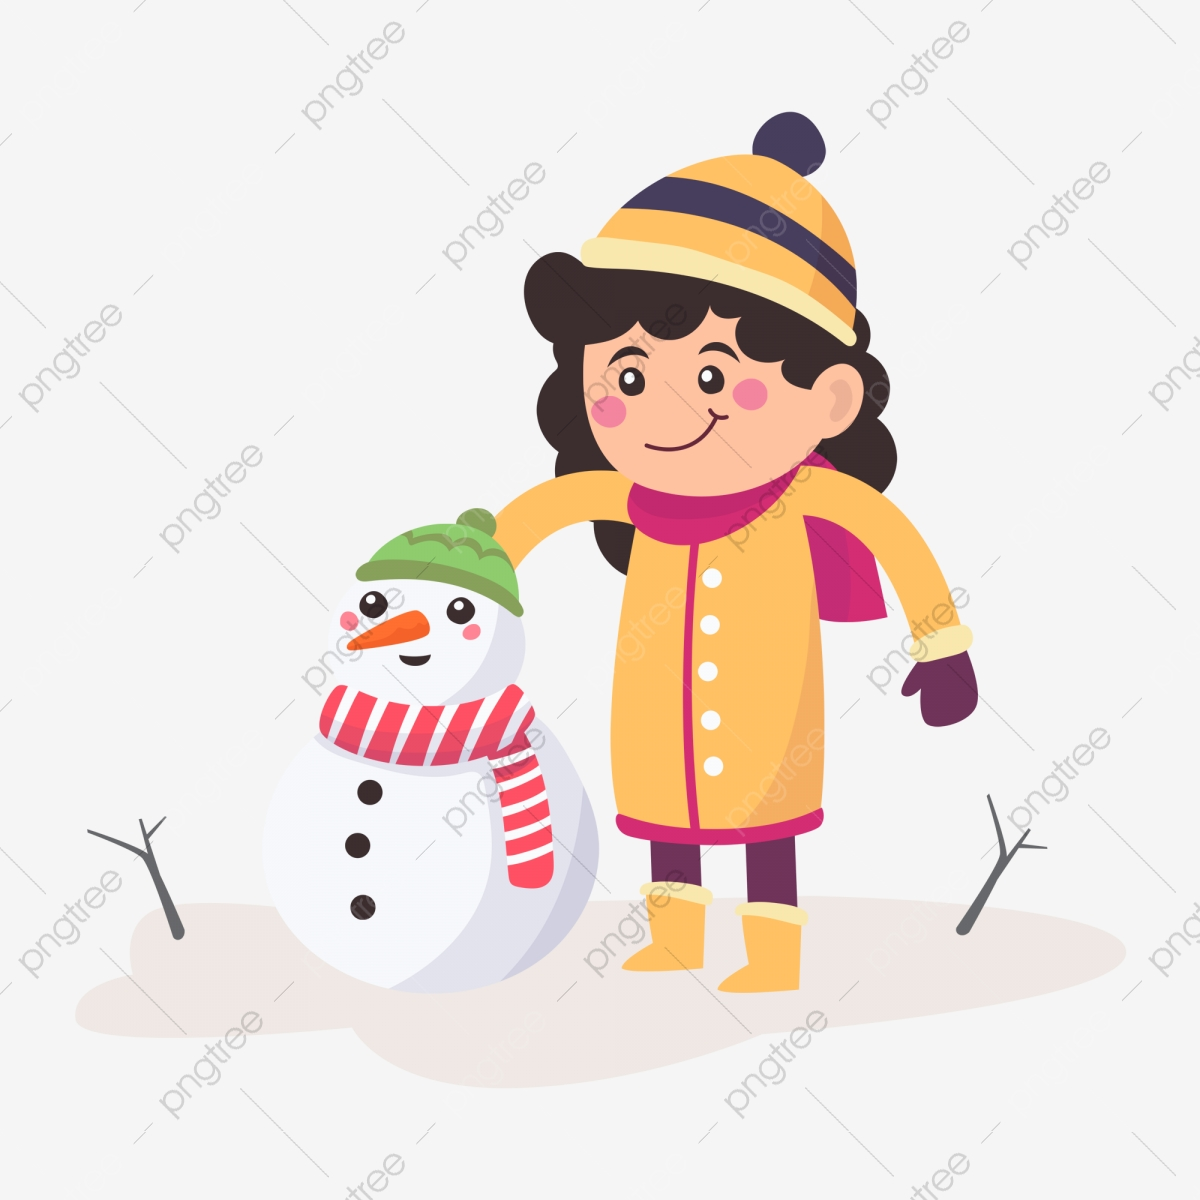 Kids Winter Activities. Children In Warm Clothes Play Outdoor.. Royalty  Free Cliparts, Vectors, And Stock Illustration. Image 64655310.